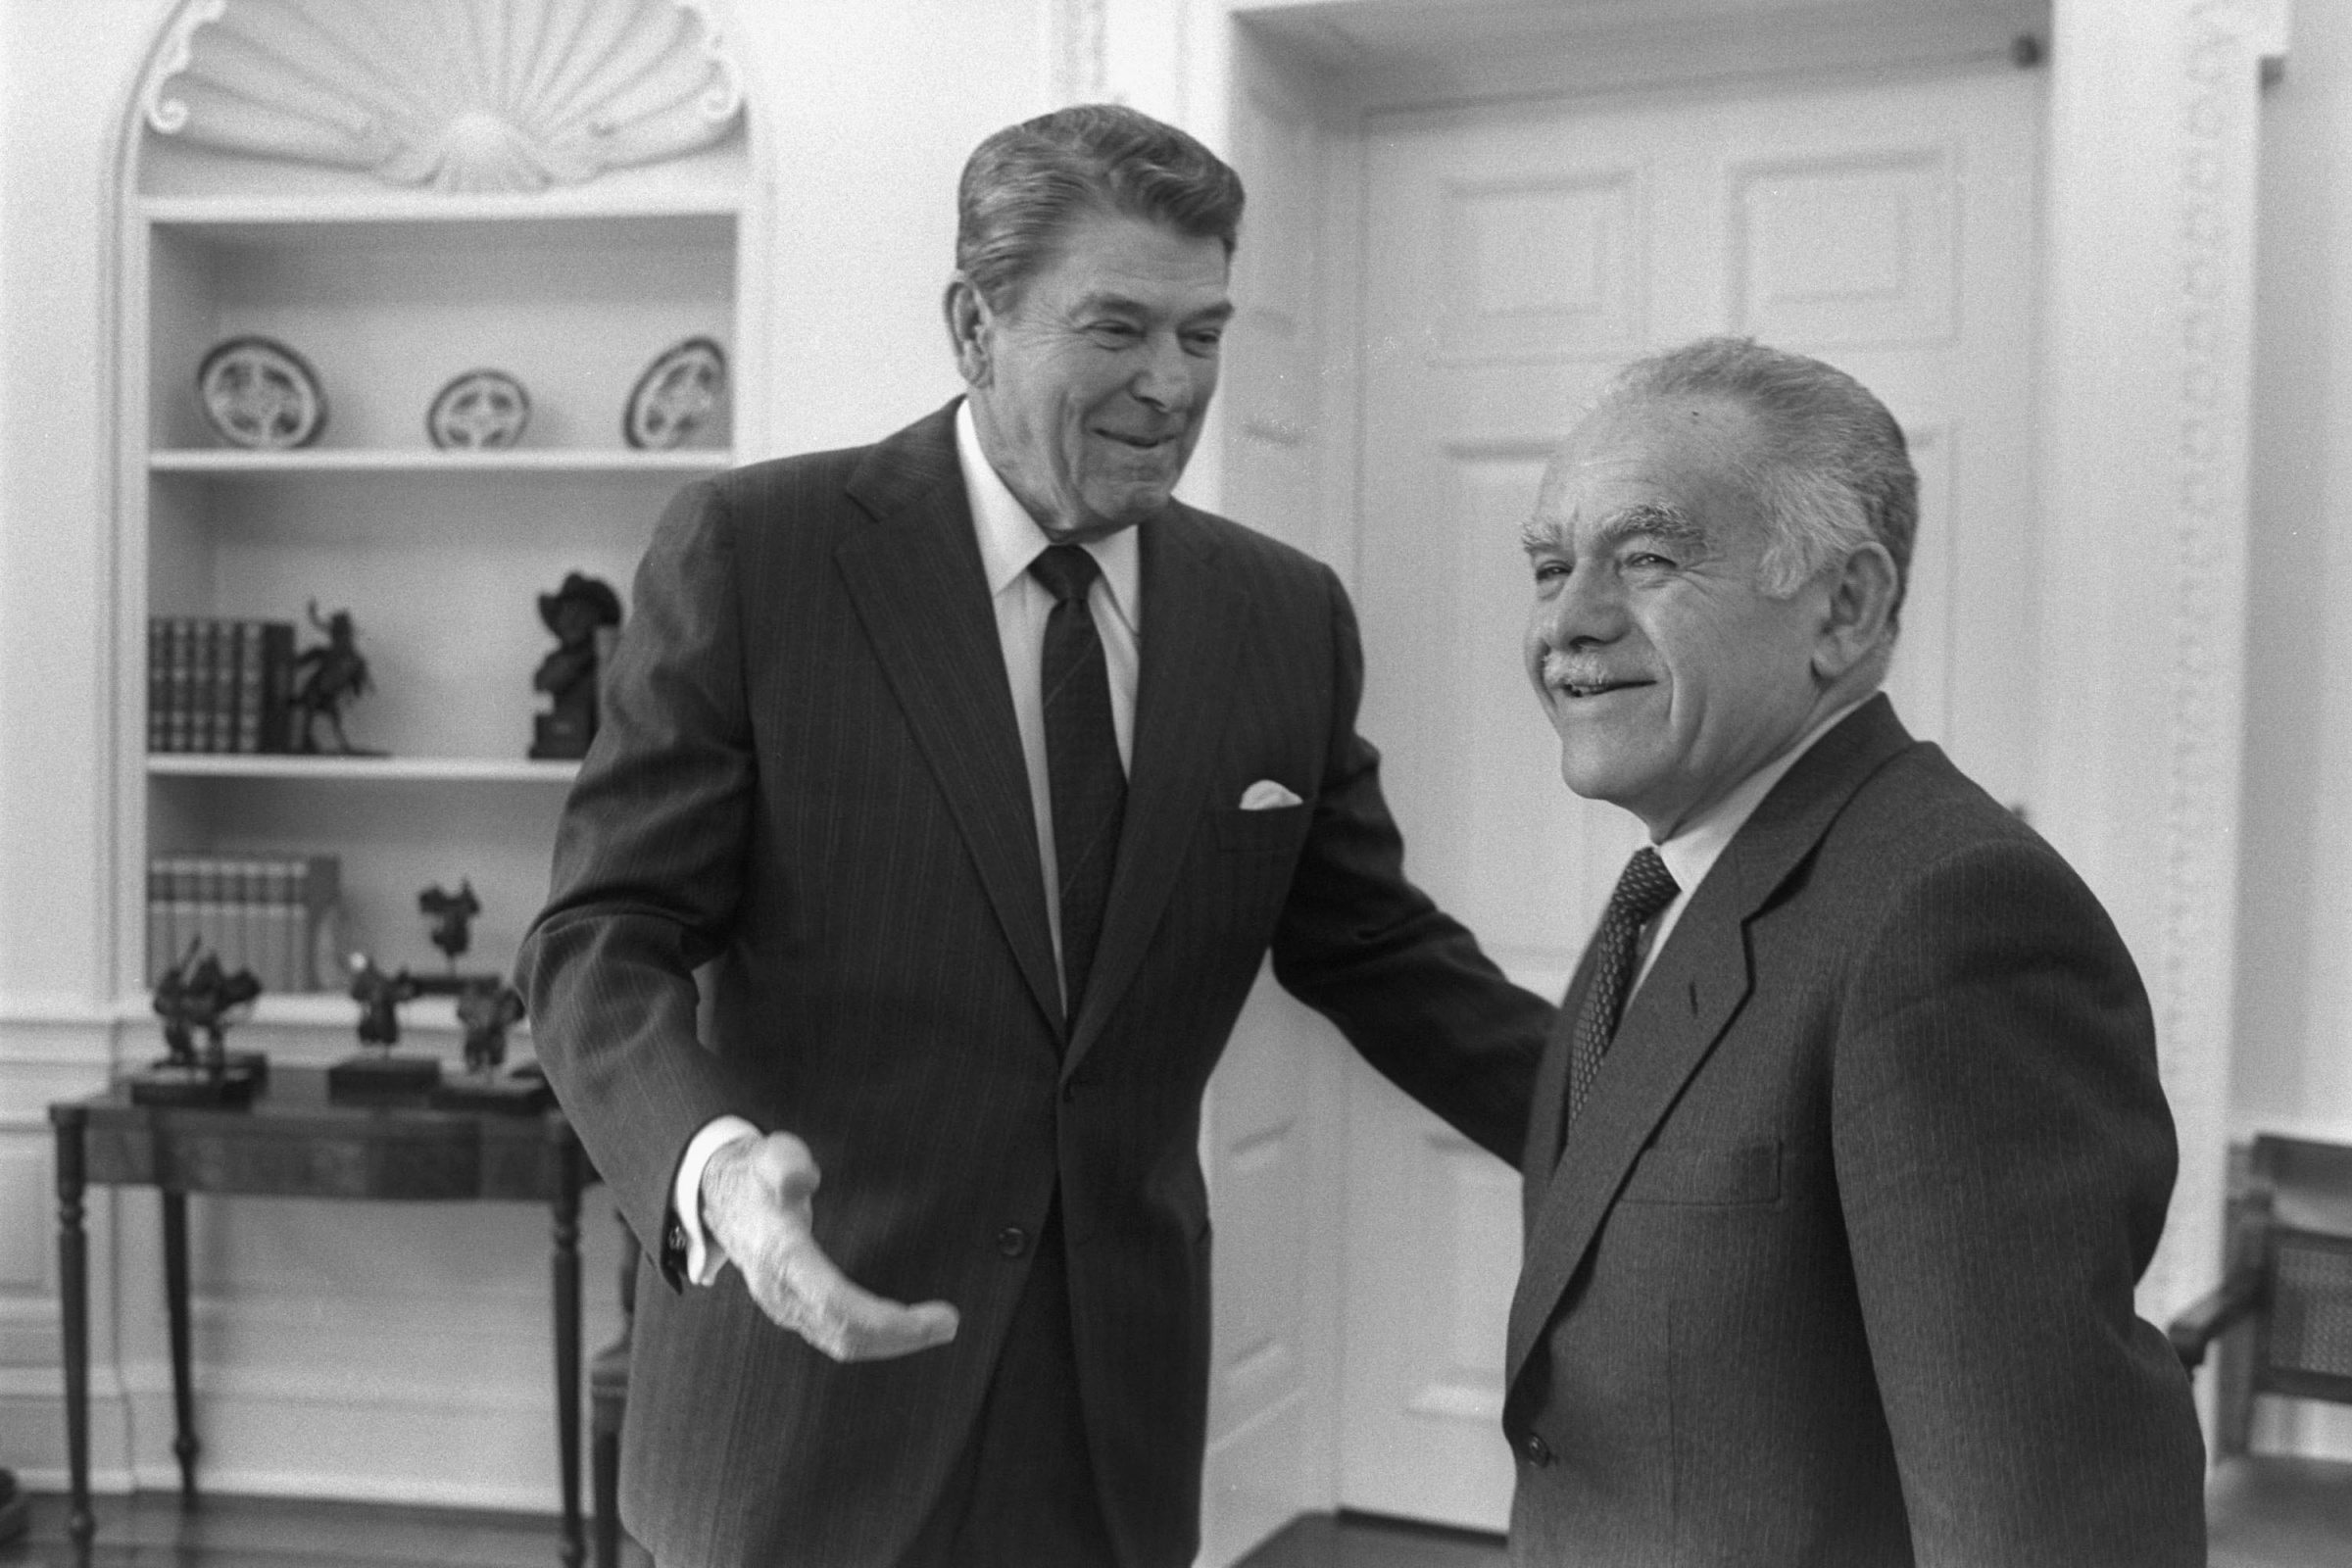 President Ronald Reagan and Israeli Prime Minister Yitzhak Shamir meet in the White House, 18 February 1987. (Photo by Herman Chanania/GPO via Getty Images)